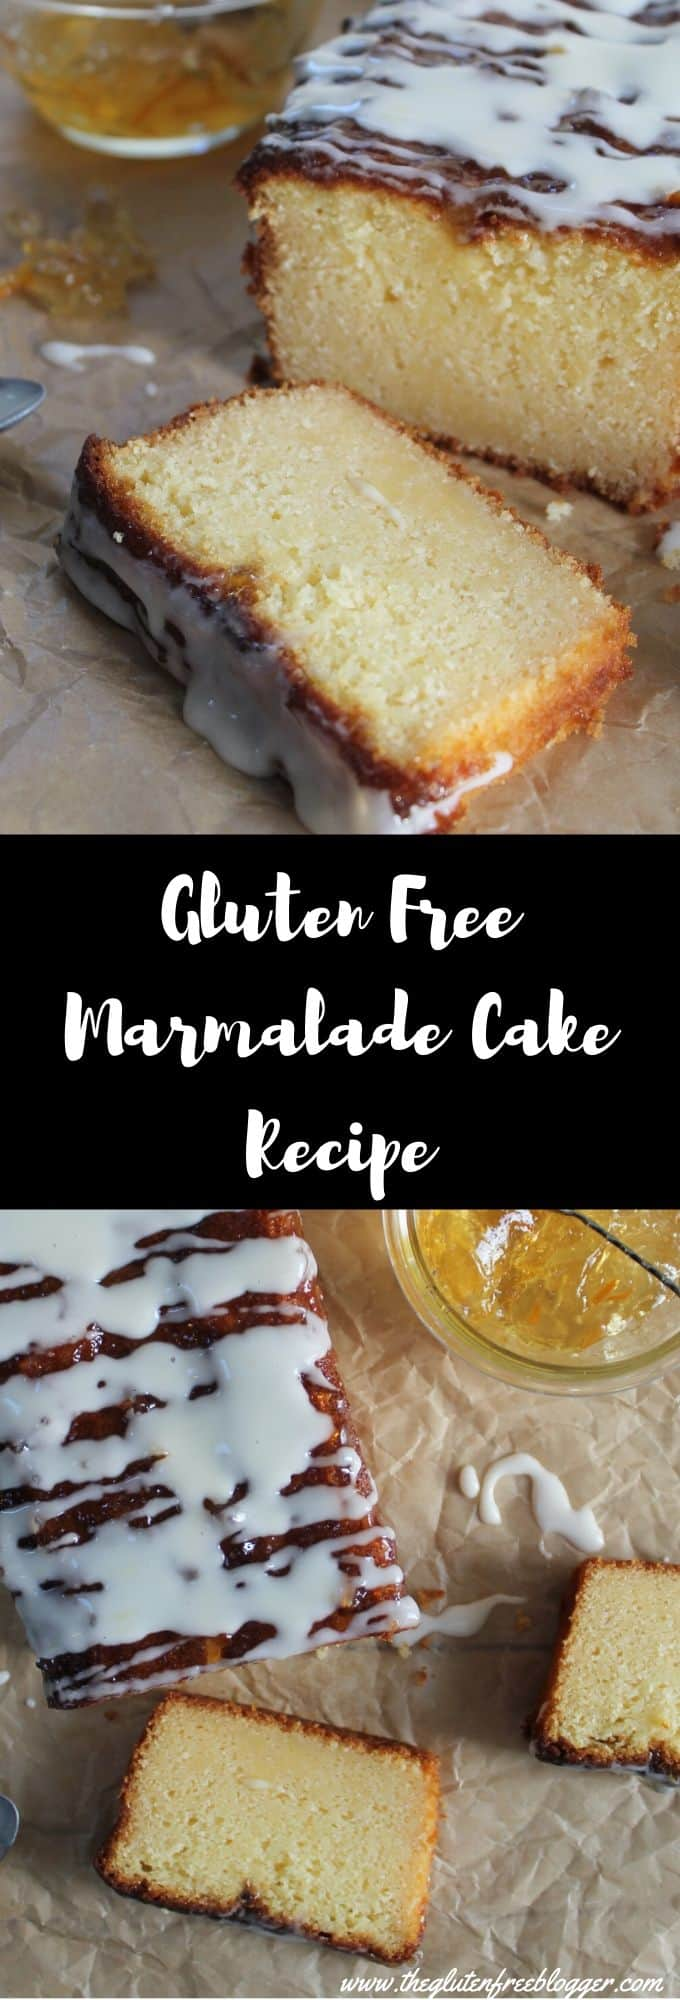 gluten free marmalade cake recipe loaf cake easy bake coeliac celiac friendly